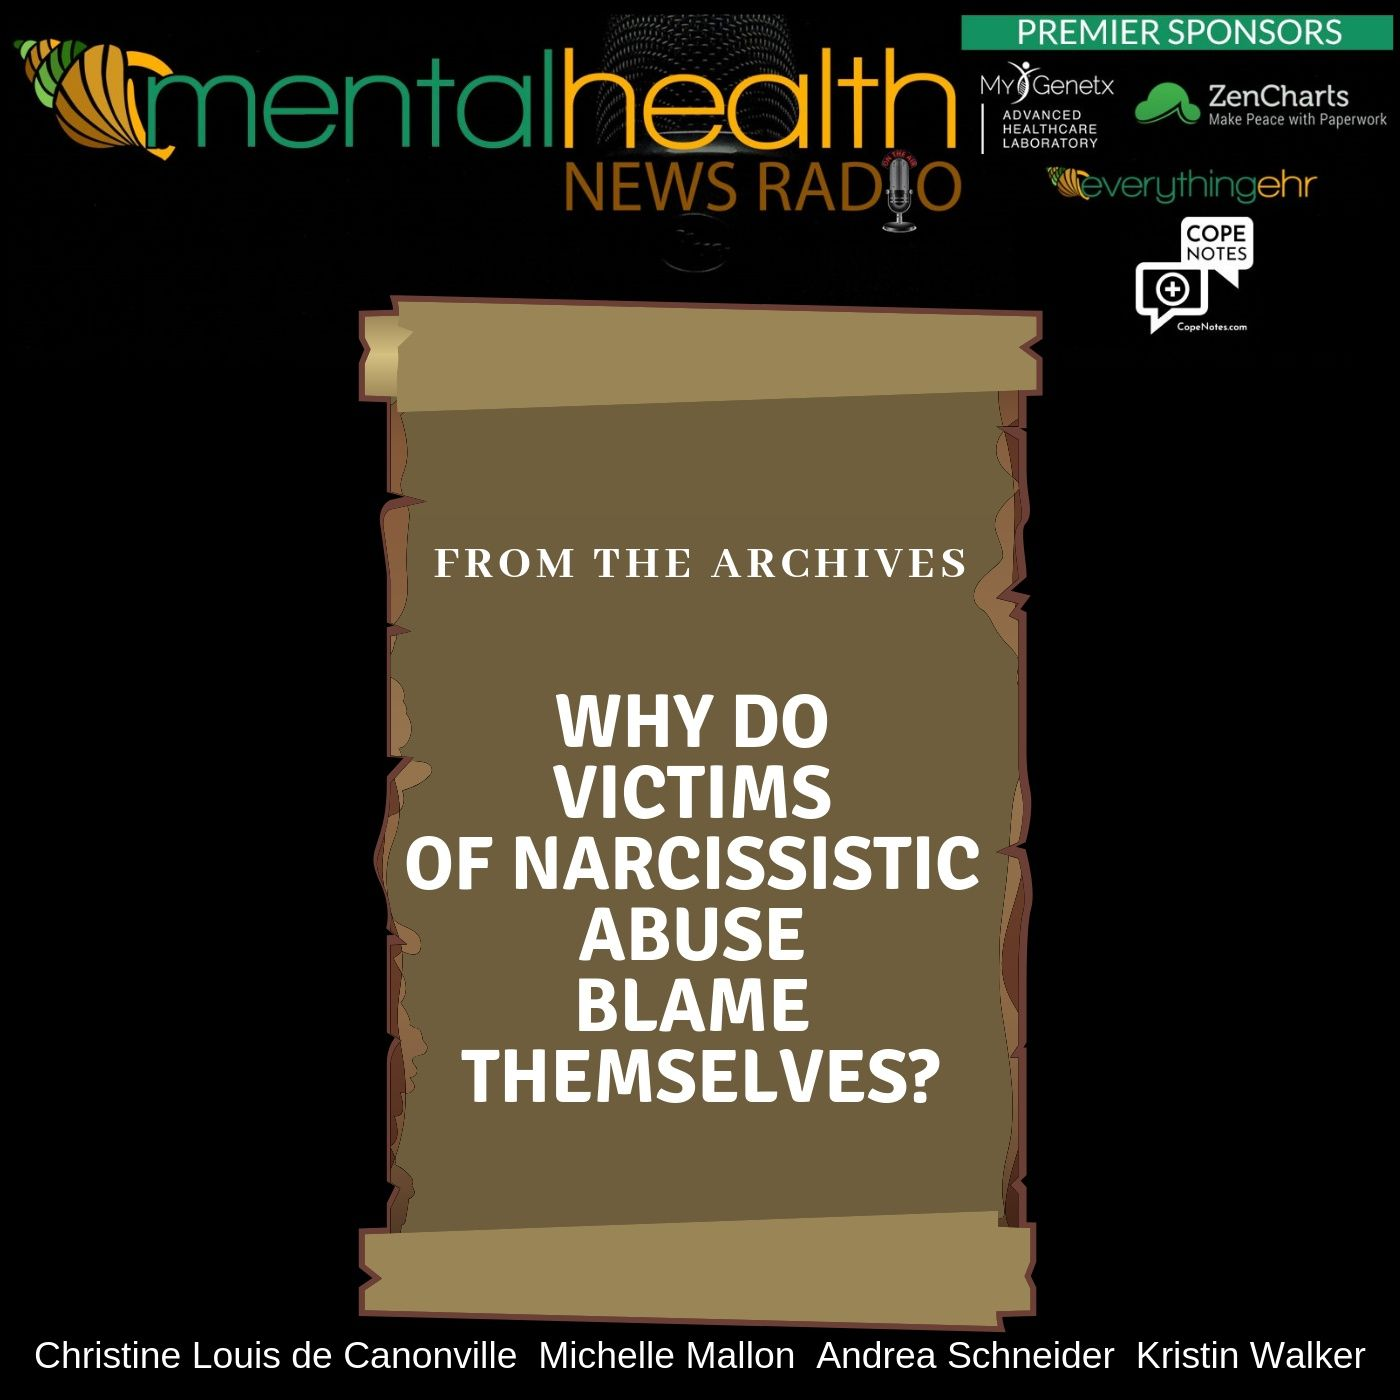 Mental Health News Radio - From the Archives: Why Do Victims of Narcissistic Abuse Blame Themselves?